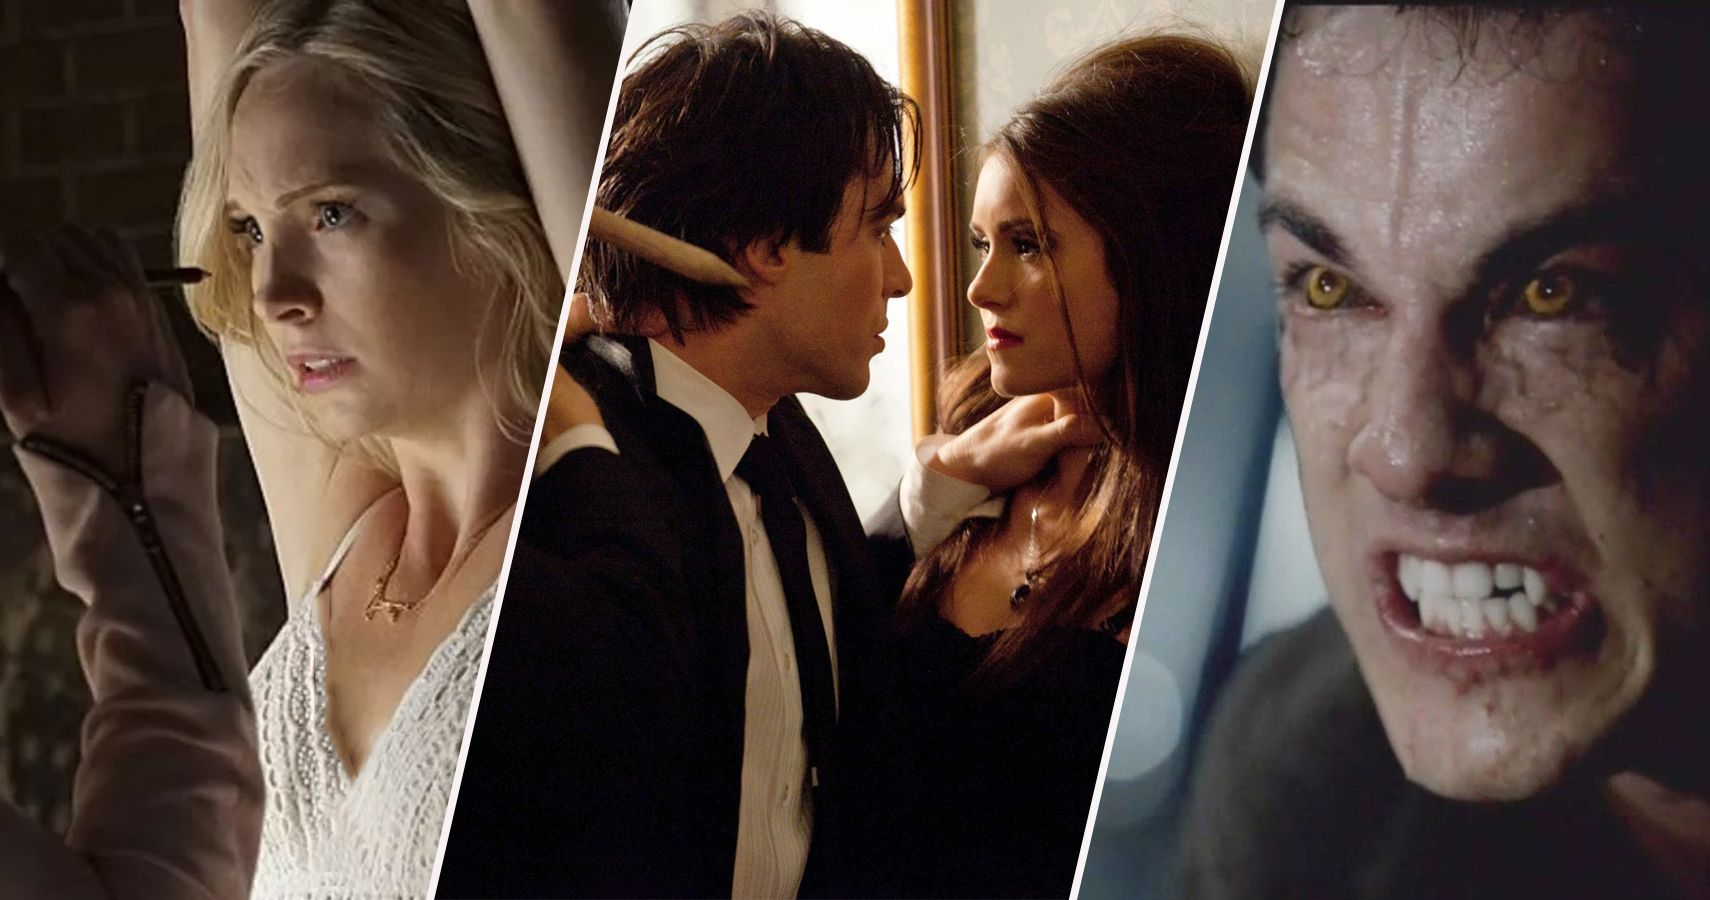 The Vampire Diaries: 20 Glaring Plot Holes Fans Can't Unsee